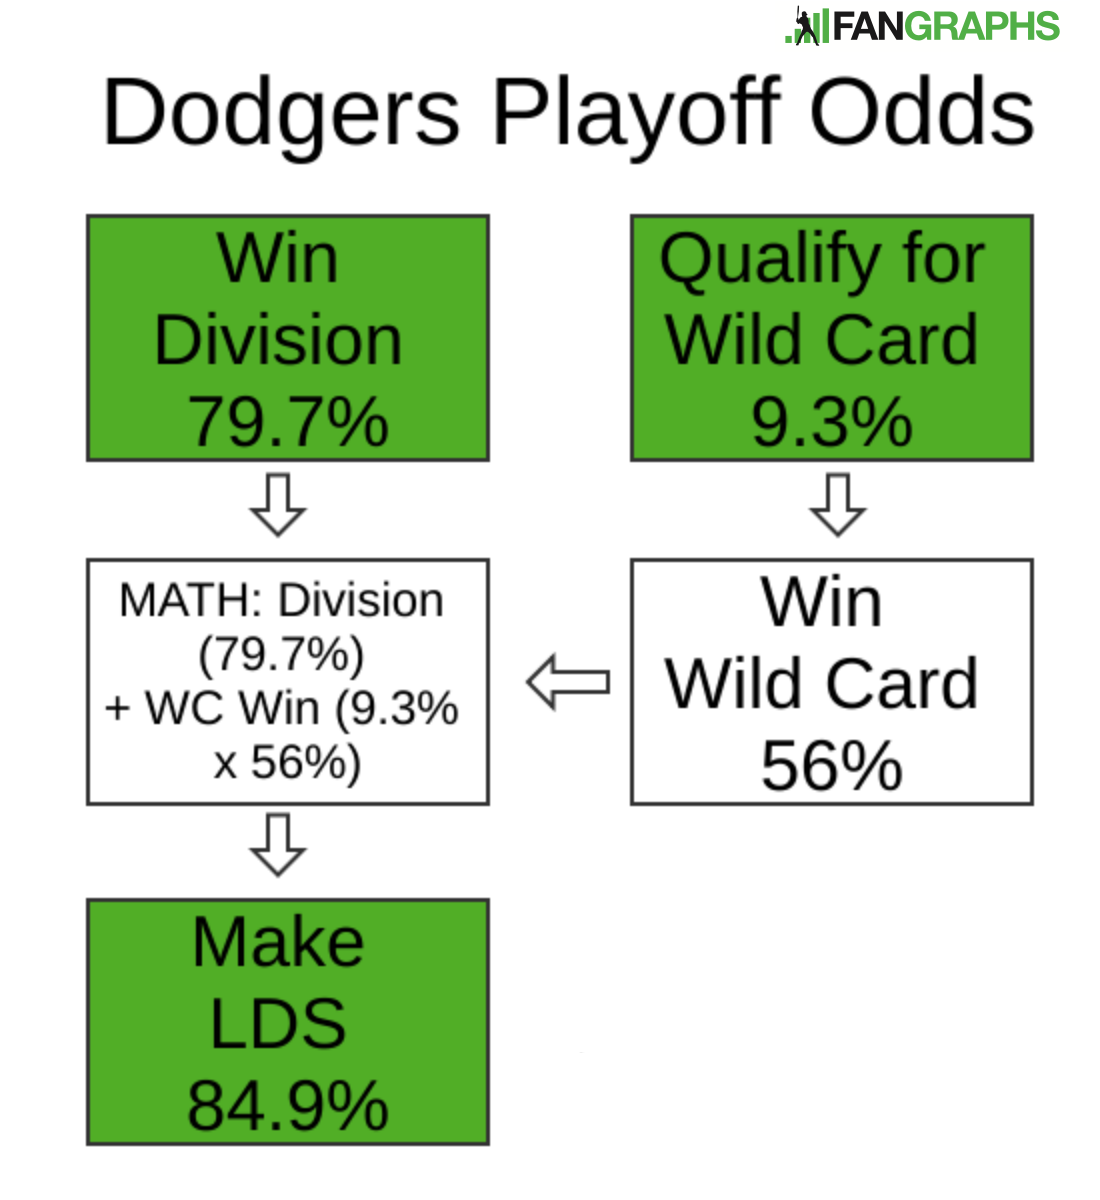 016a075b341 The green boxes denote scenarios for which figures are available by way of  our Playoff Odds page. Hopefully this make sense so far.